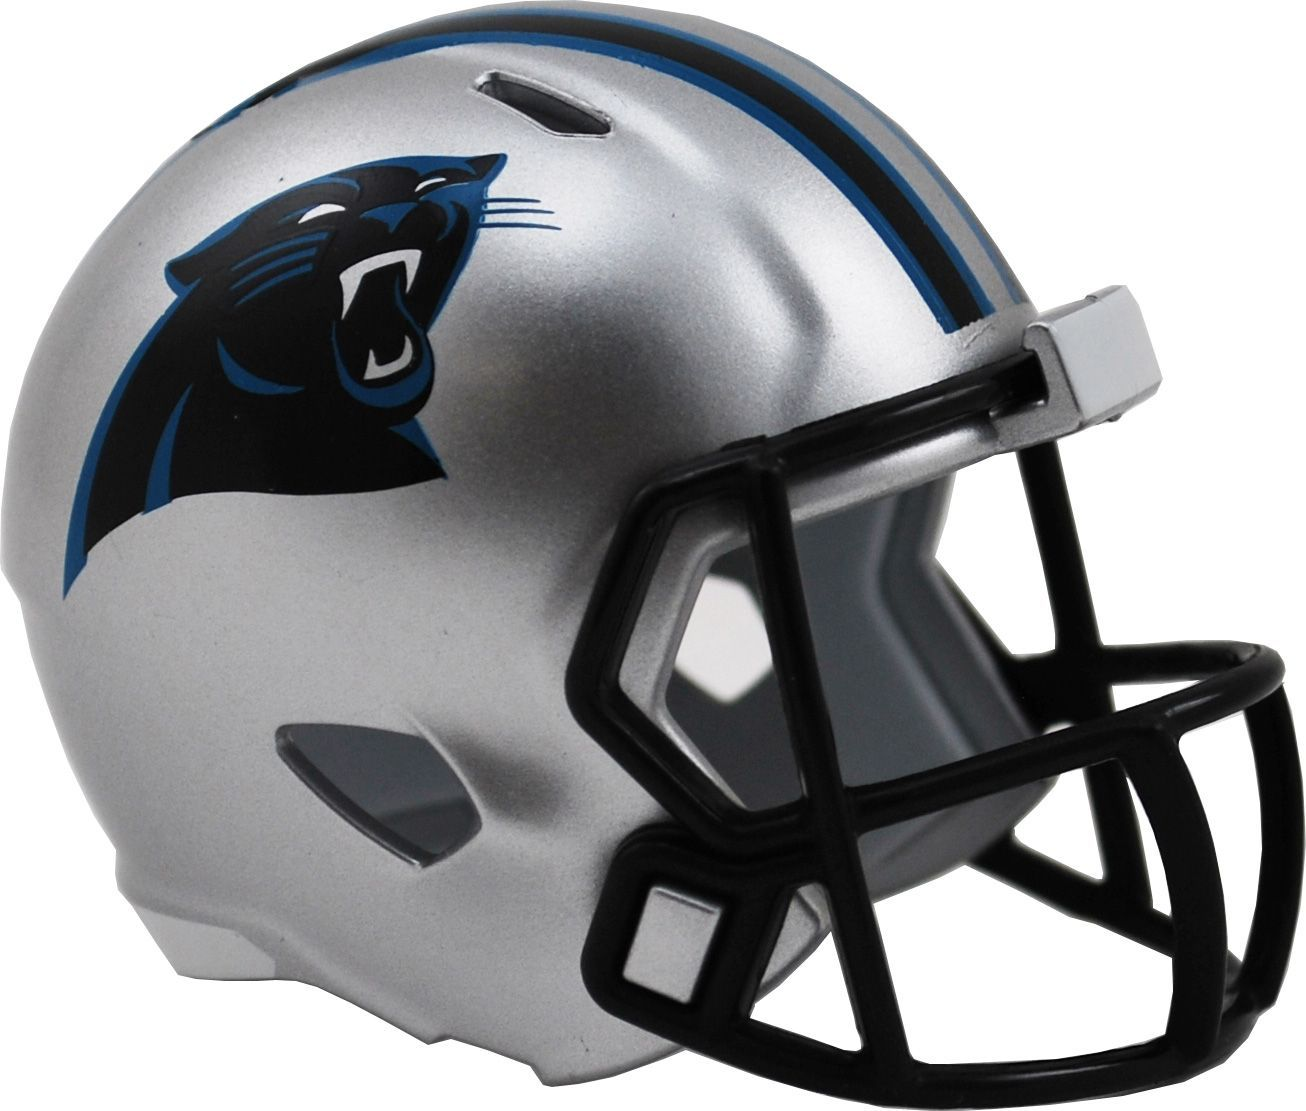 Riddell Carolina Panthers Pocket Single Speed Helmet Carolina Panthers Helmet Carolina Panthers Panthers Helmet